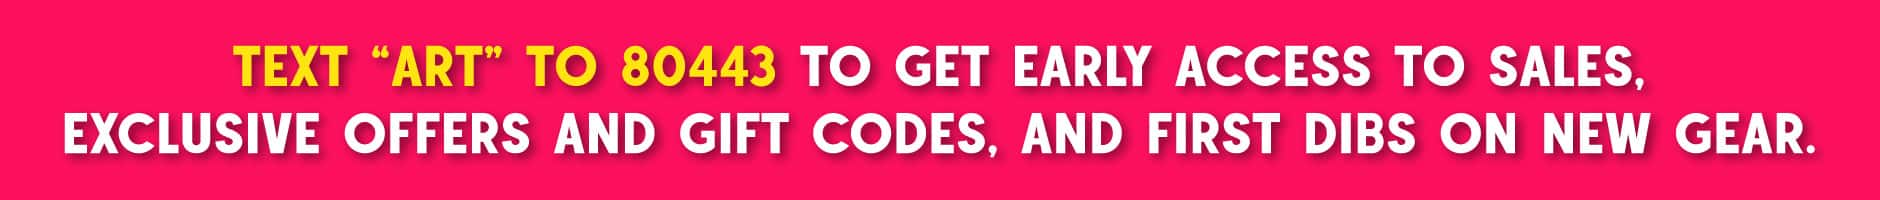 """Text """"ART"""" to 80443 to get early access to sales, exclusive offers and gift codes, and first dibs on"""